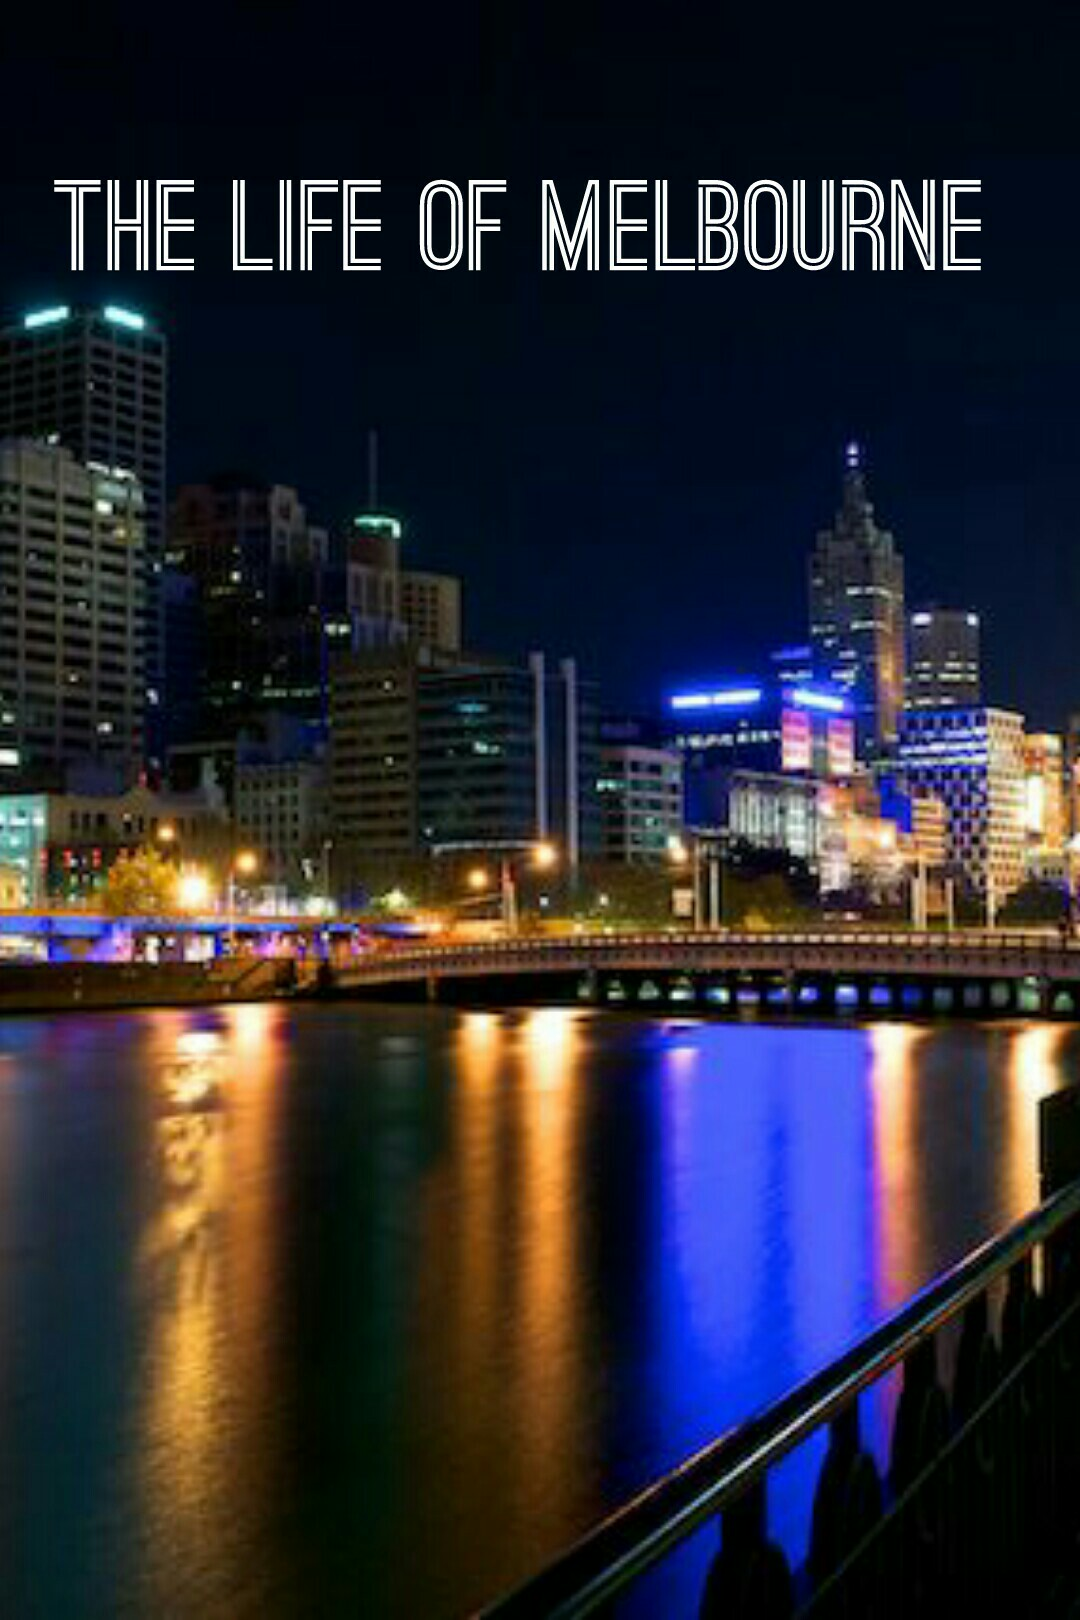 The life of melbourne